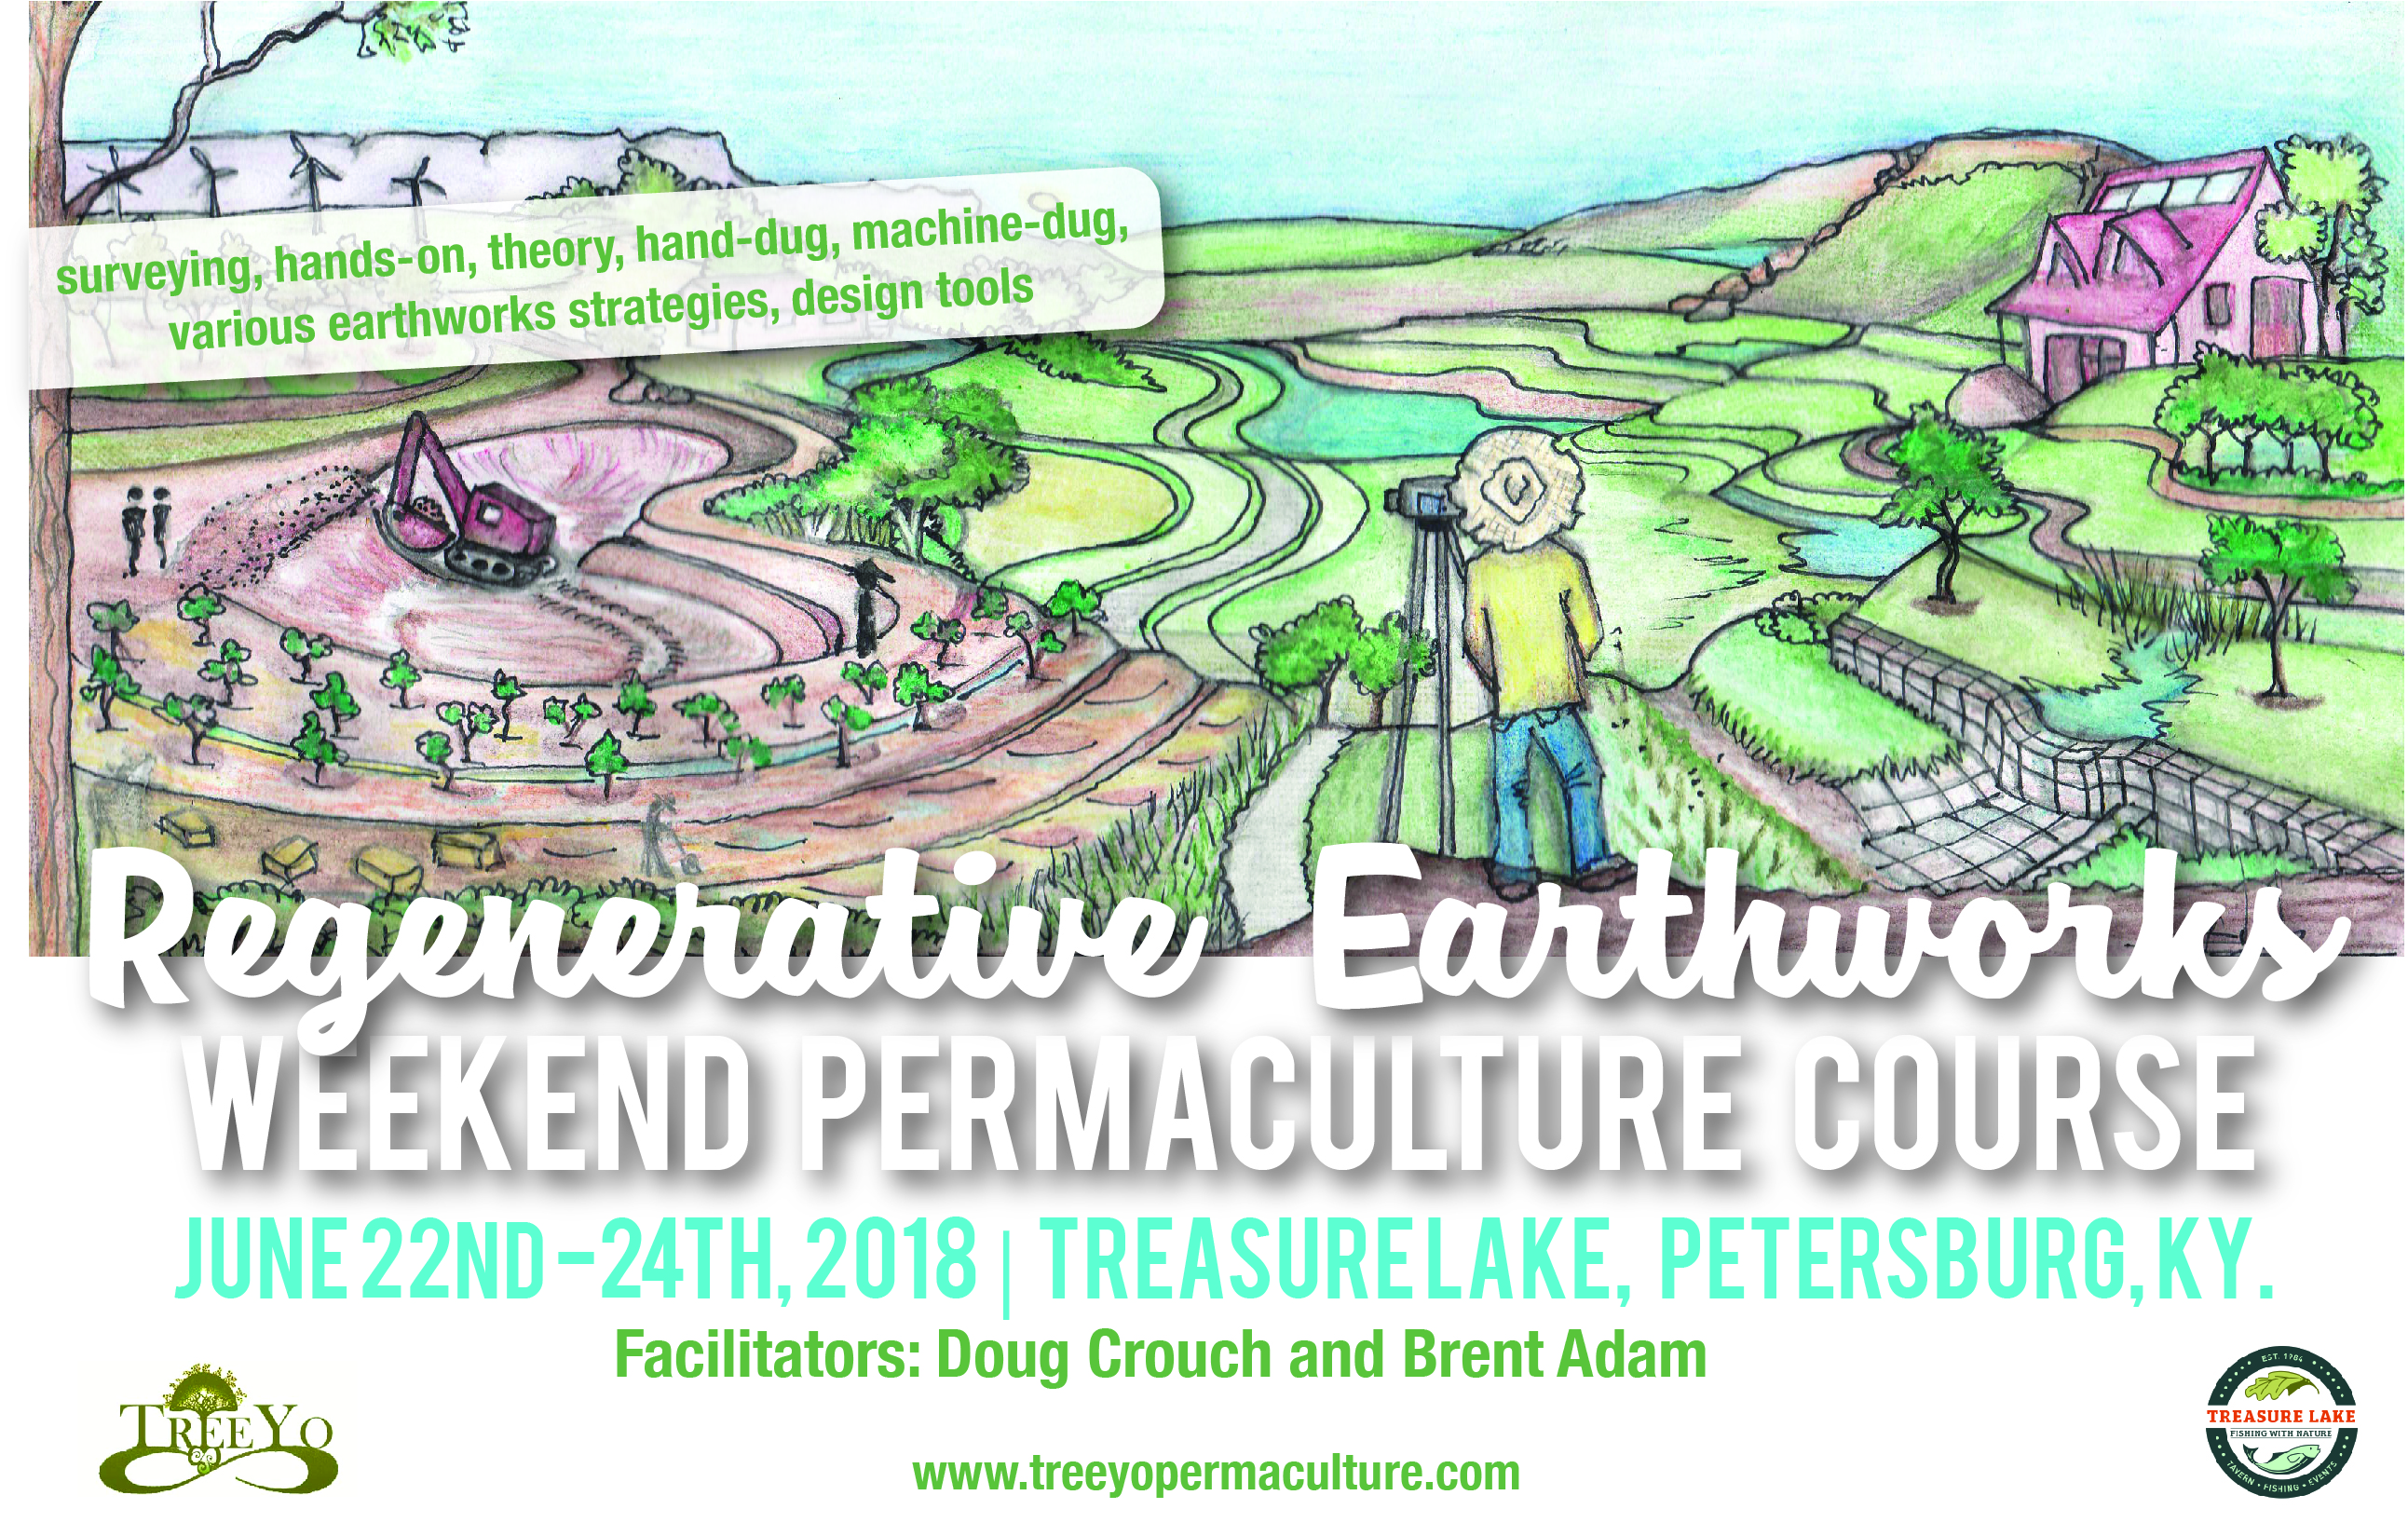 Regenerative Earthworks Weekend Course: June 22nd-24th, 2018: Treasure Lake, Petersburg, Kentucky.